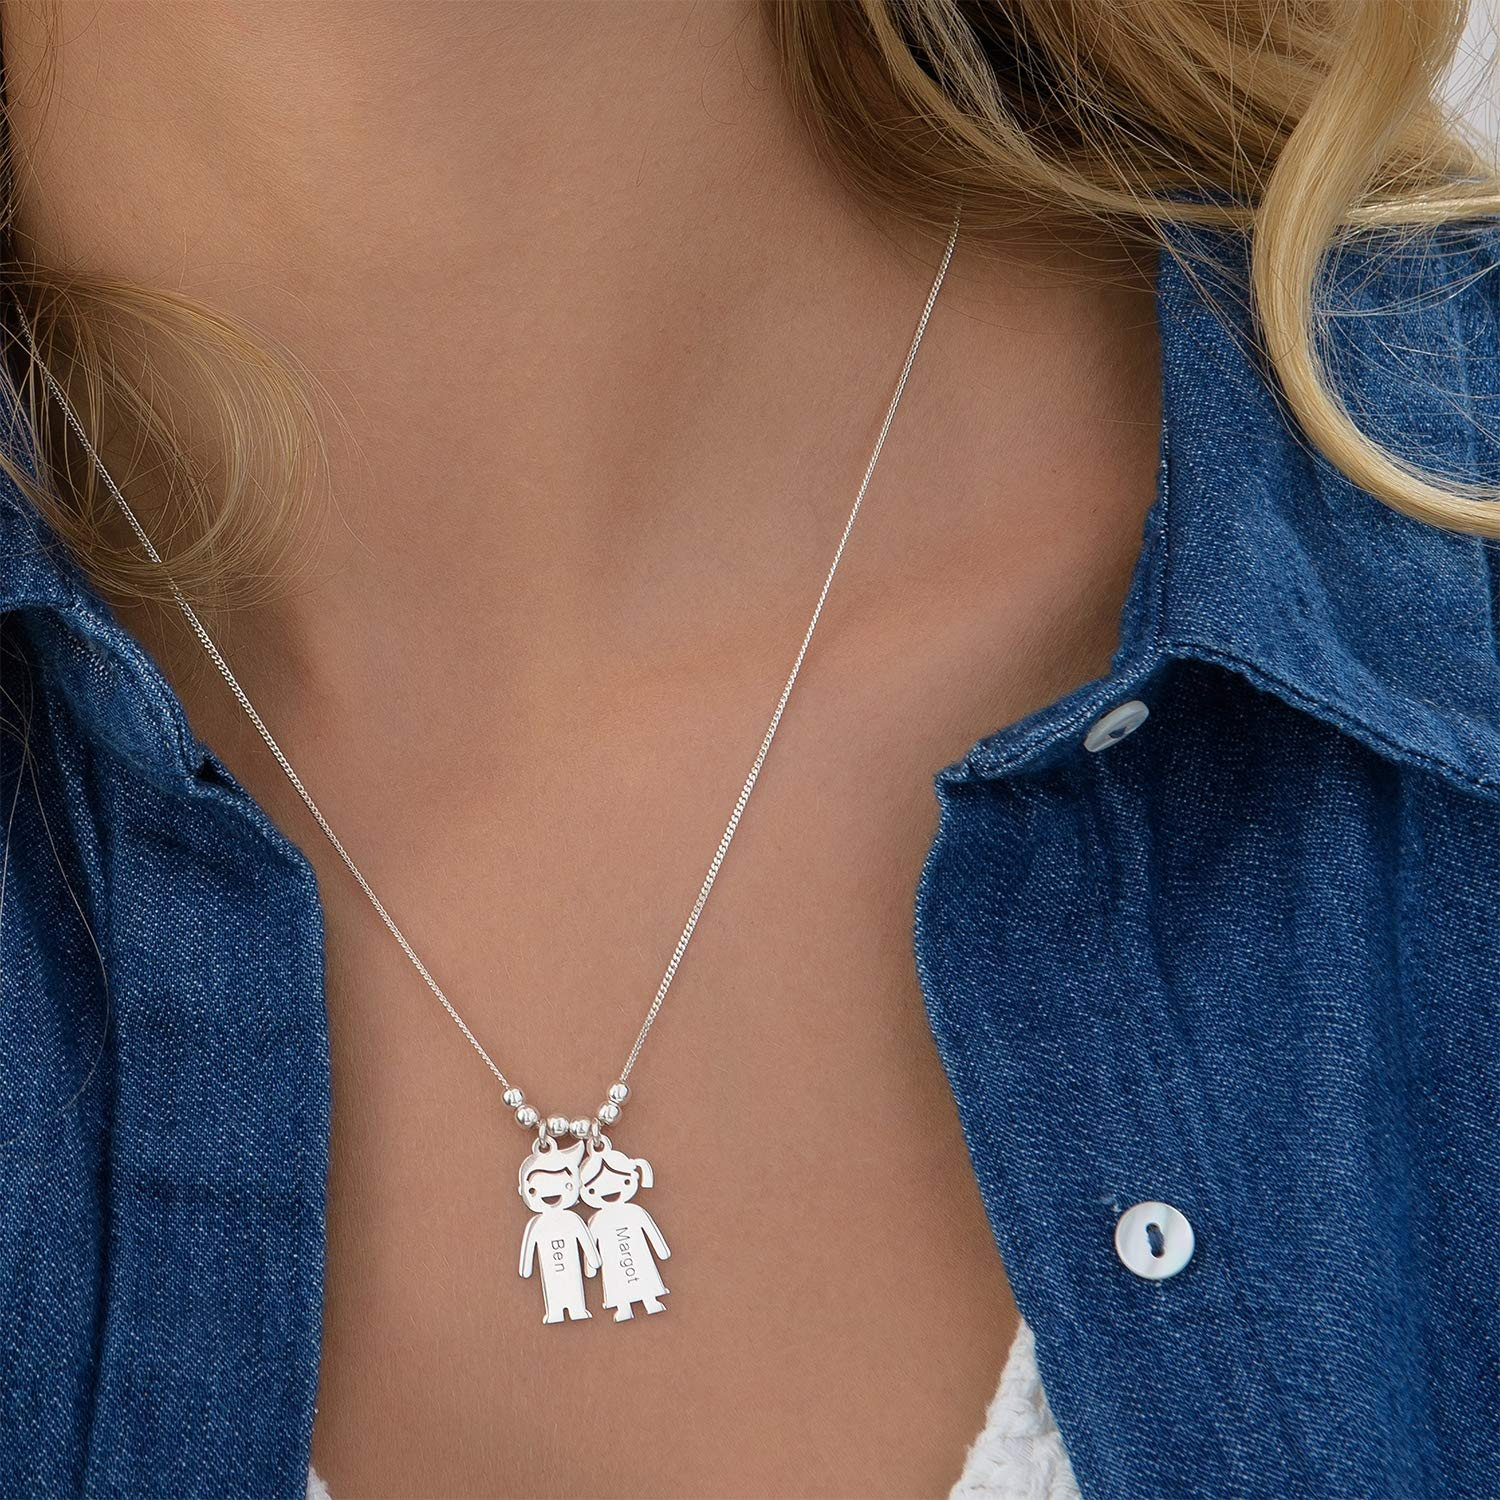 Personalized Children Charms Mothers Necklace-Engraved Boy Girl Charm Jewelry by MyNameNecklace (Image #3)